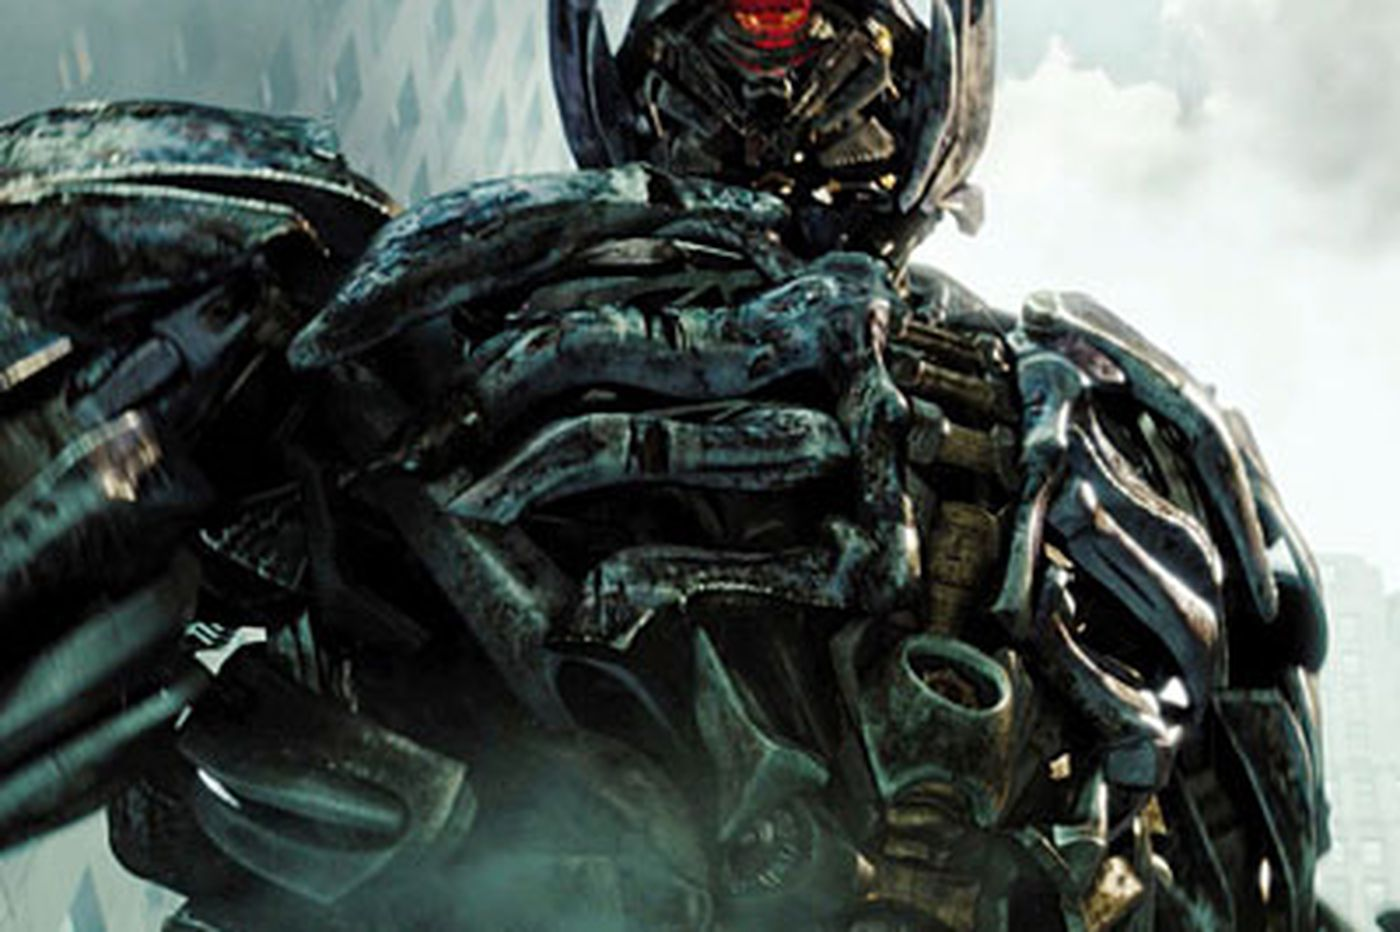 Transformers: Too much meets the eye